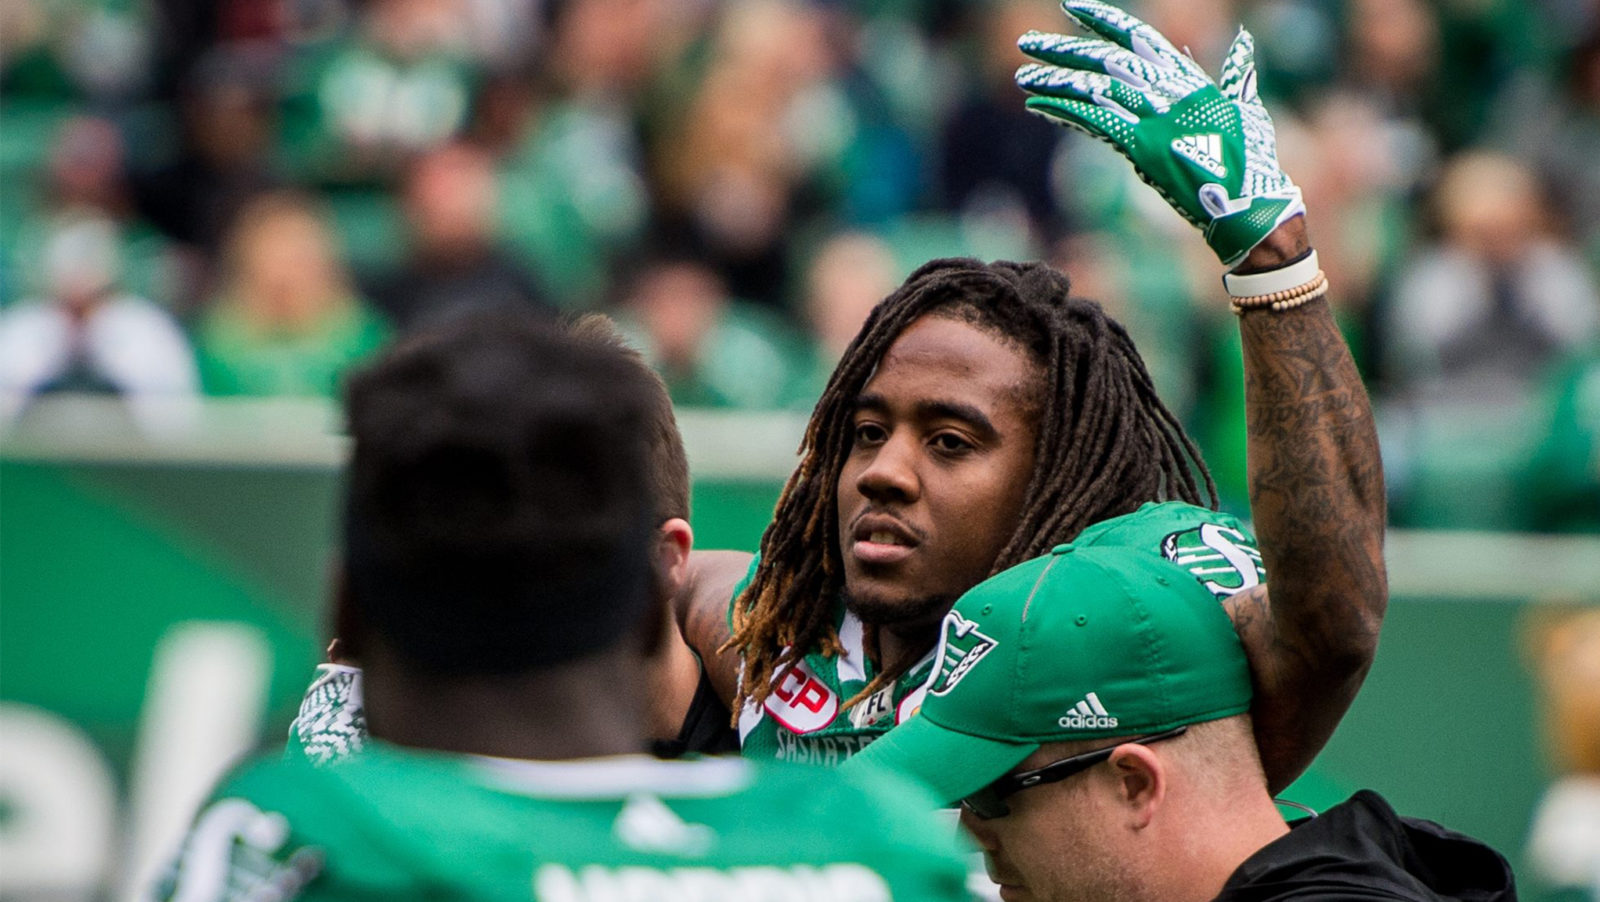 Calgary Stampeders beat the Saskatchewan Roughriders despite not scoring a single touchdown